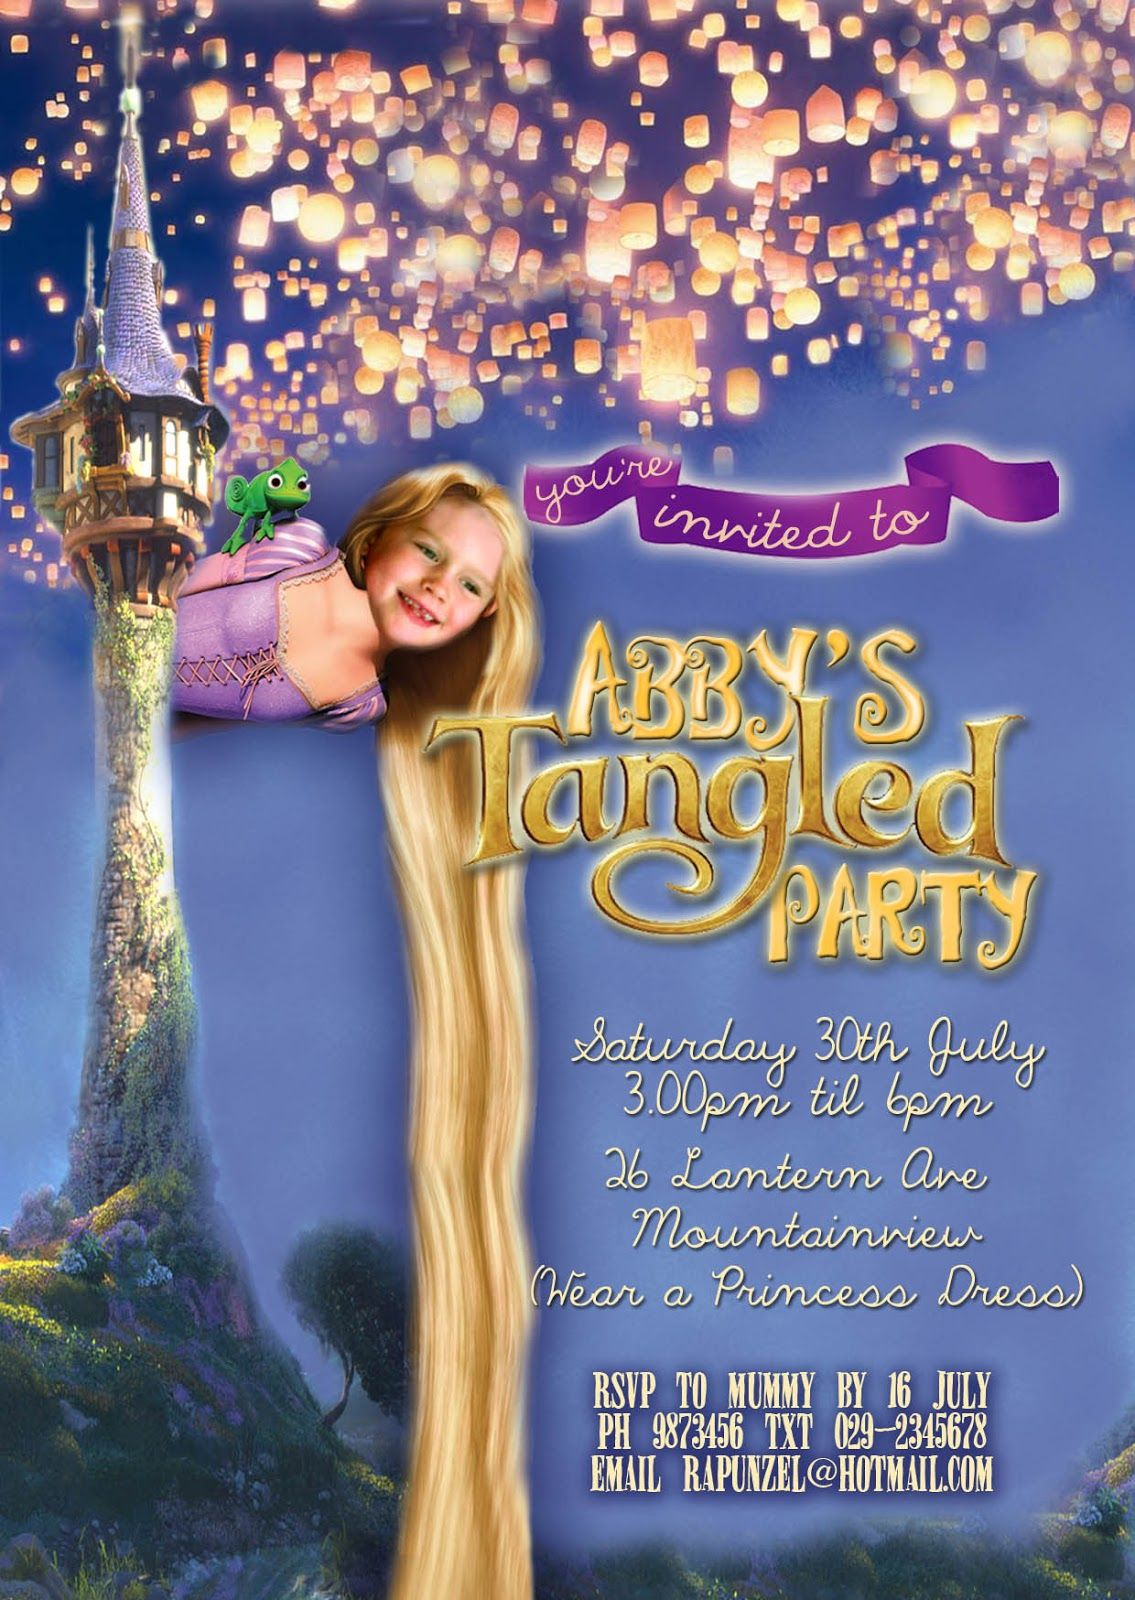 Free Kids Party Invitations Tangled Party Invitation Tangled Invitations Tangled Birthday Party Tangled Party